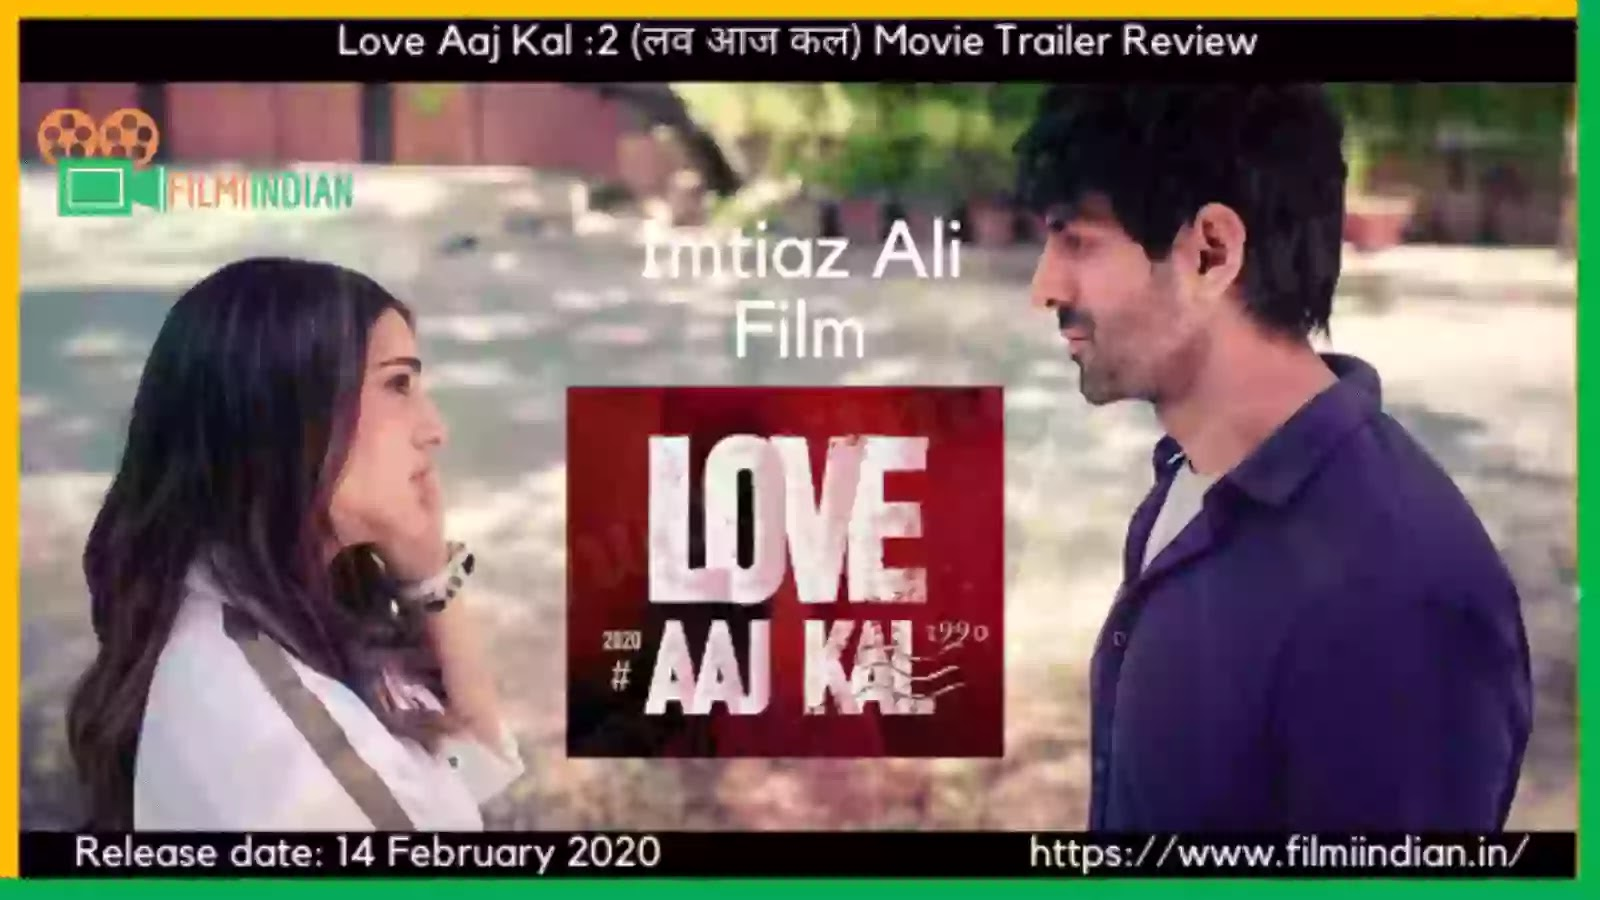 Love Aaj Kal : 2 (2020) : Movie Trailer : Best and Honest Review